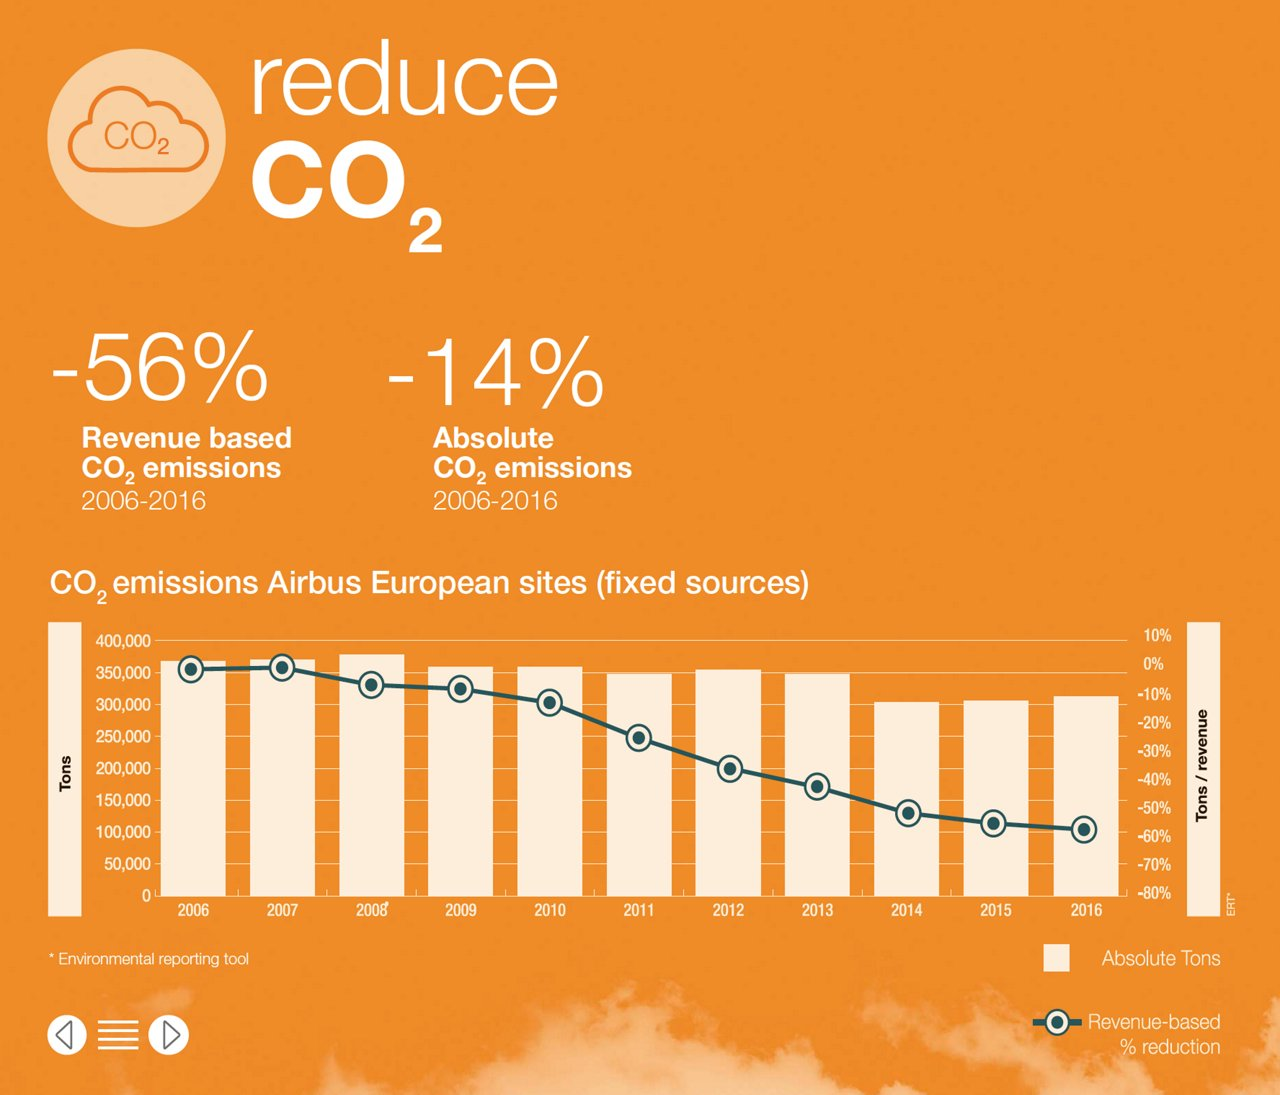 Reduce CO2